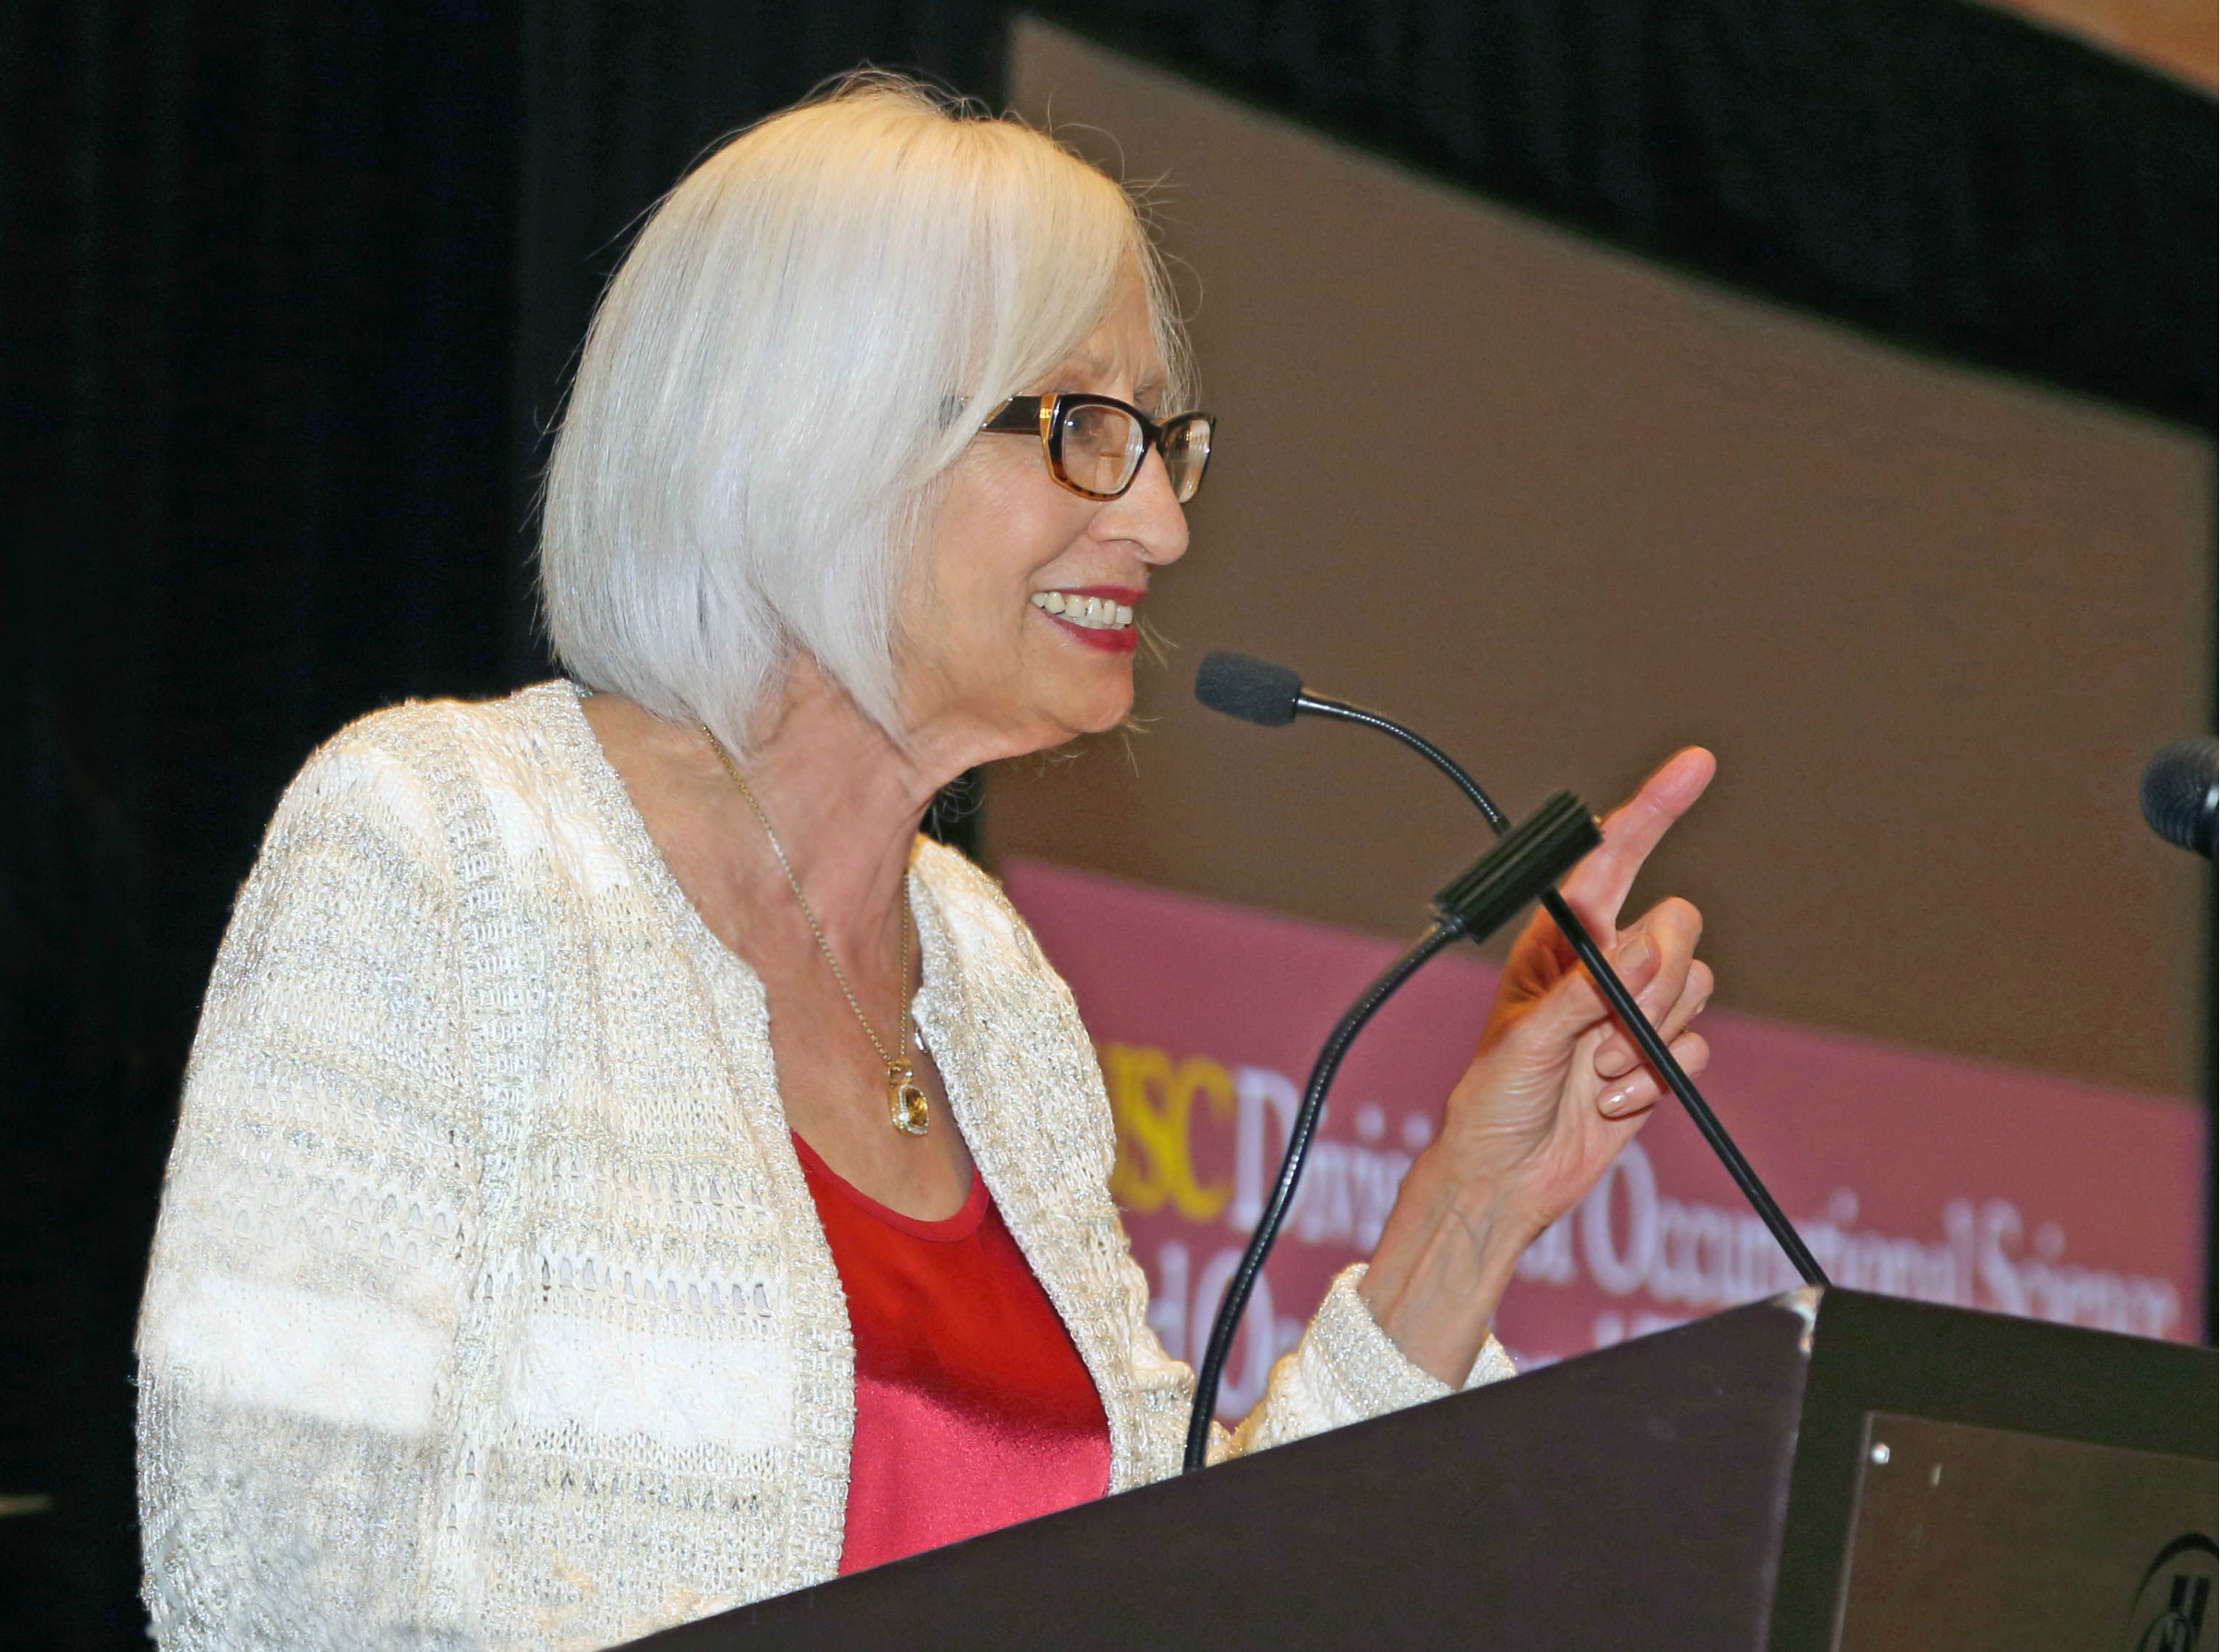 Associate dean Florence Clark makes the announcement in San Diego. (Photo/Glenn Marzano)